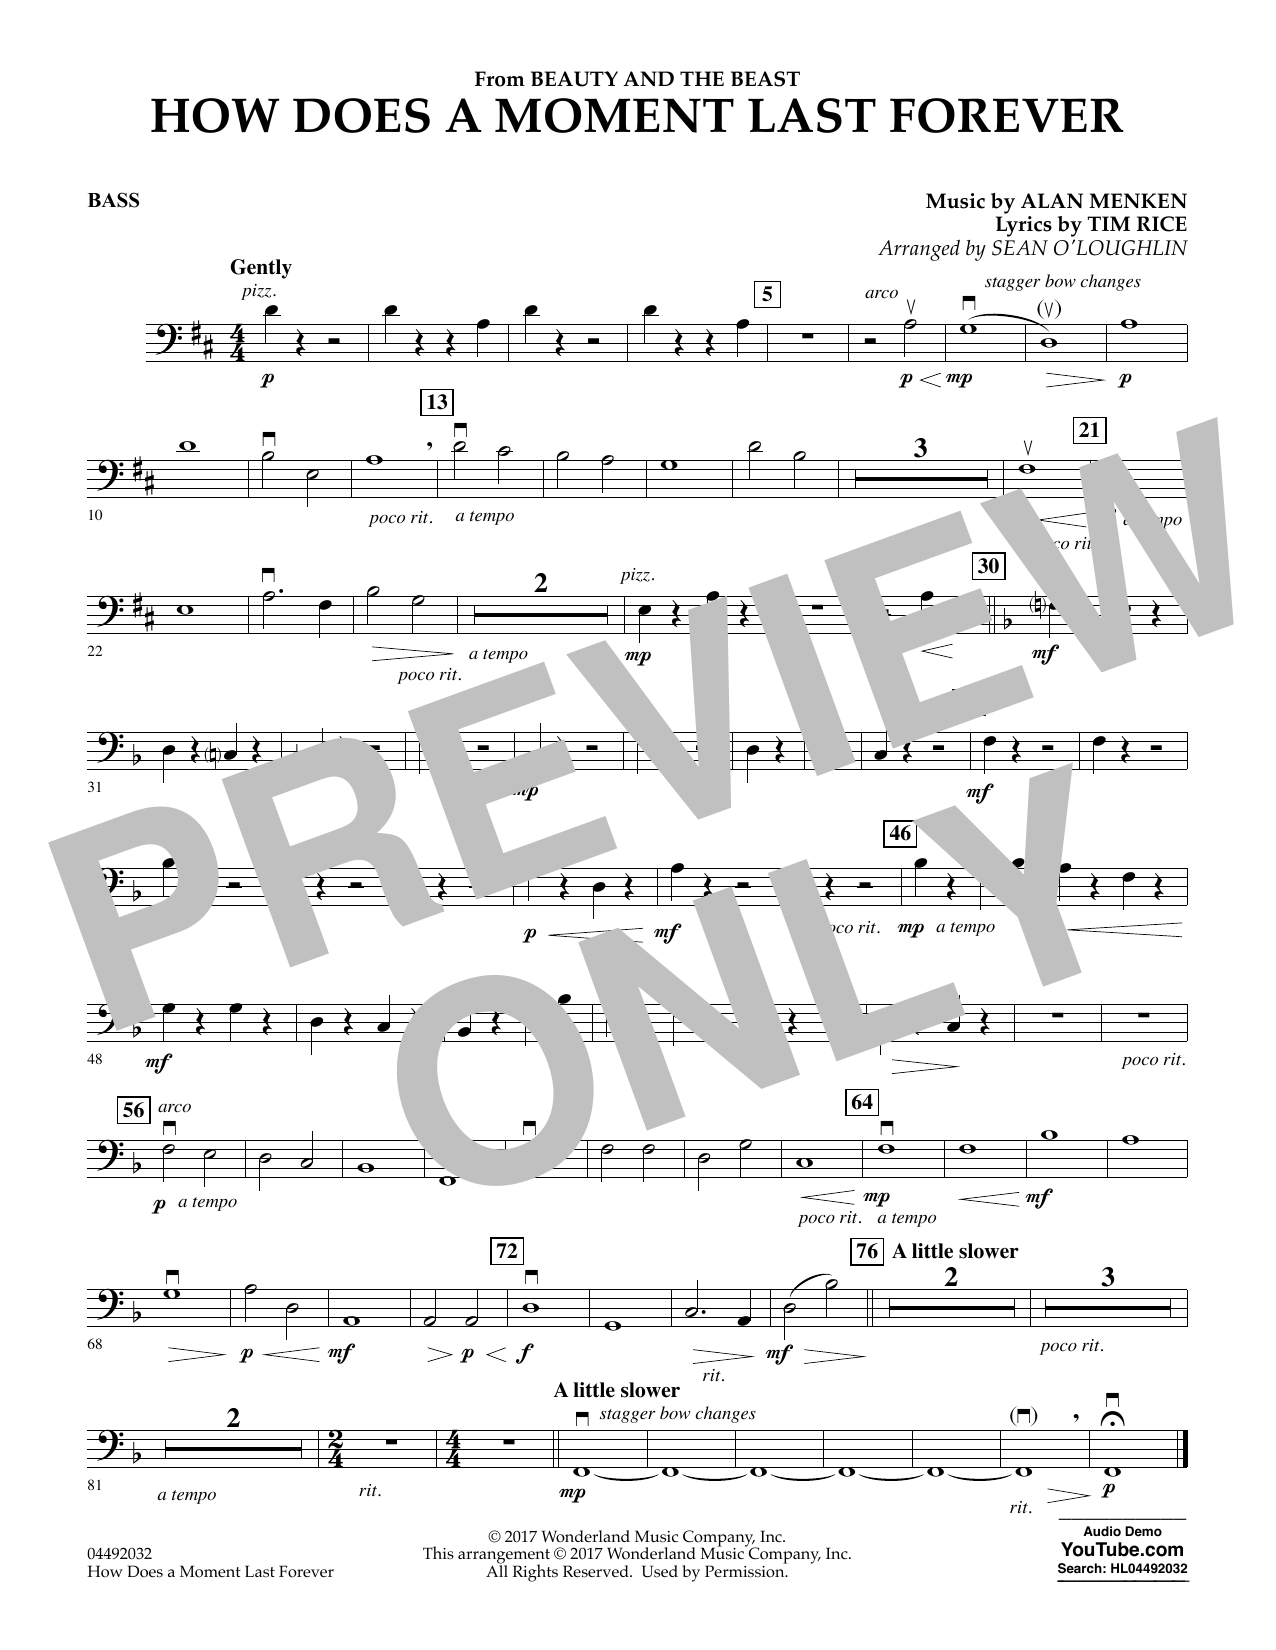 Sean O'Loughlin How Does a Moment Last Forever (from Beauty and the Beast) - Bass sheet music notes and chords. Download Printable PDF.